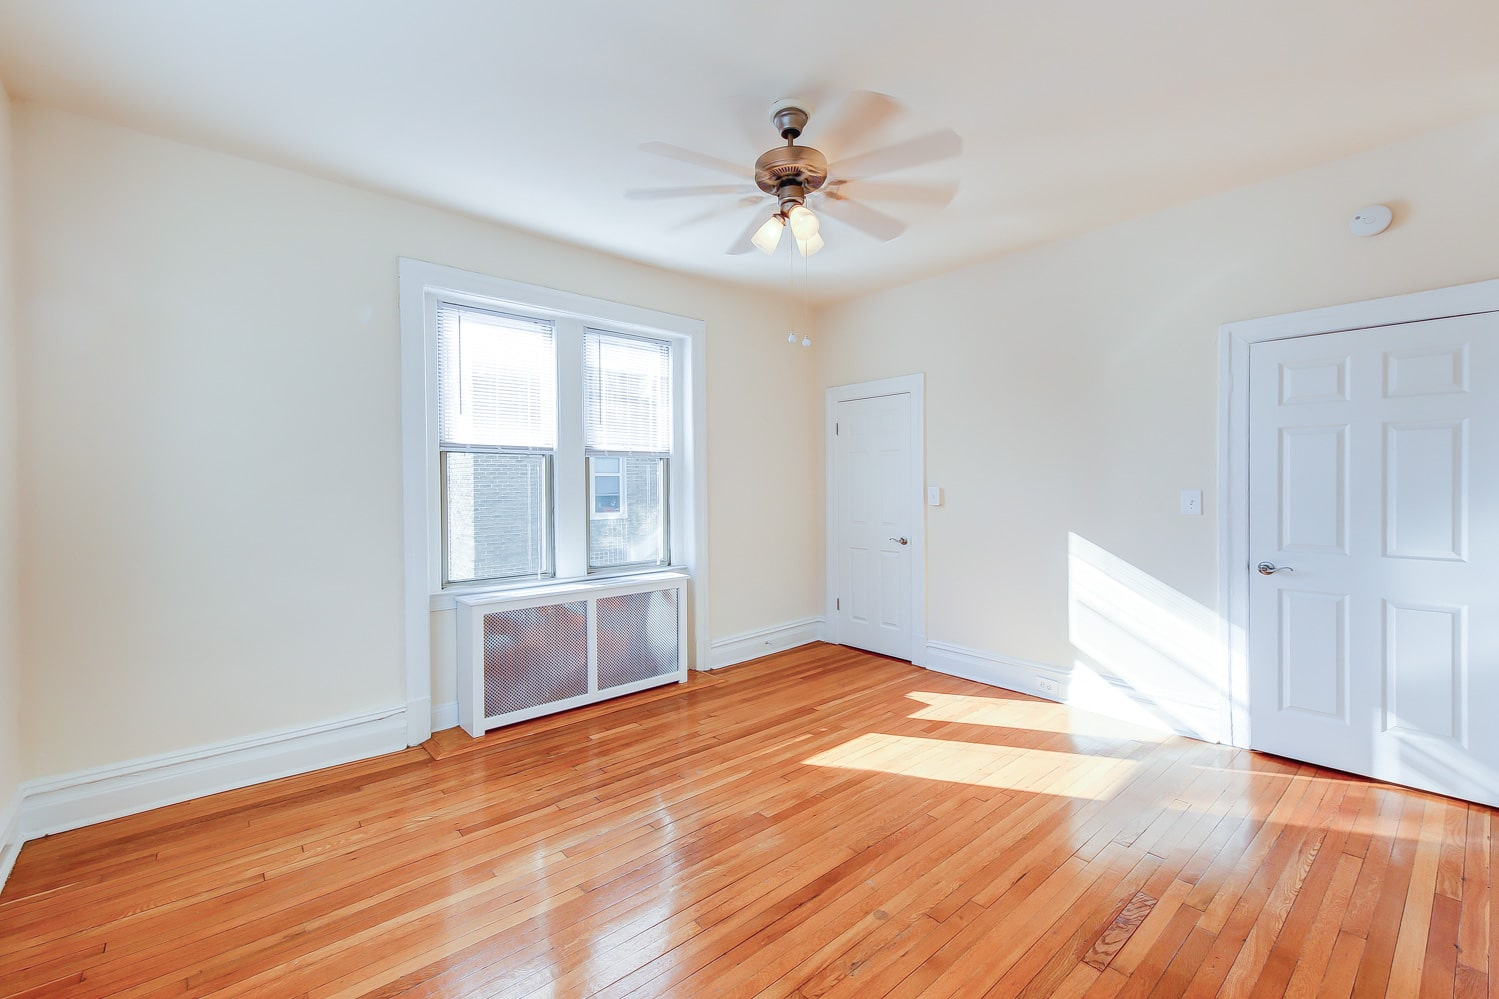 Chatham-courts-apartments-washington-dc-bedroom (3)-min